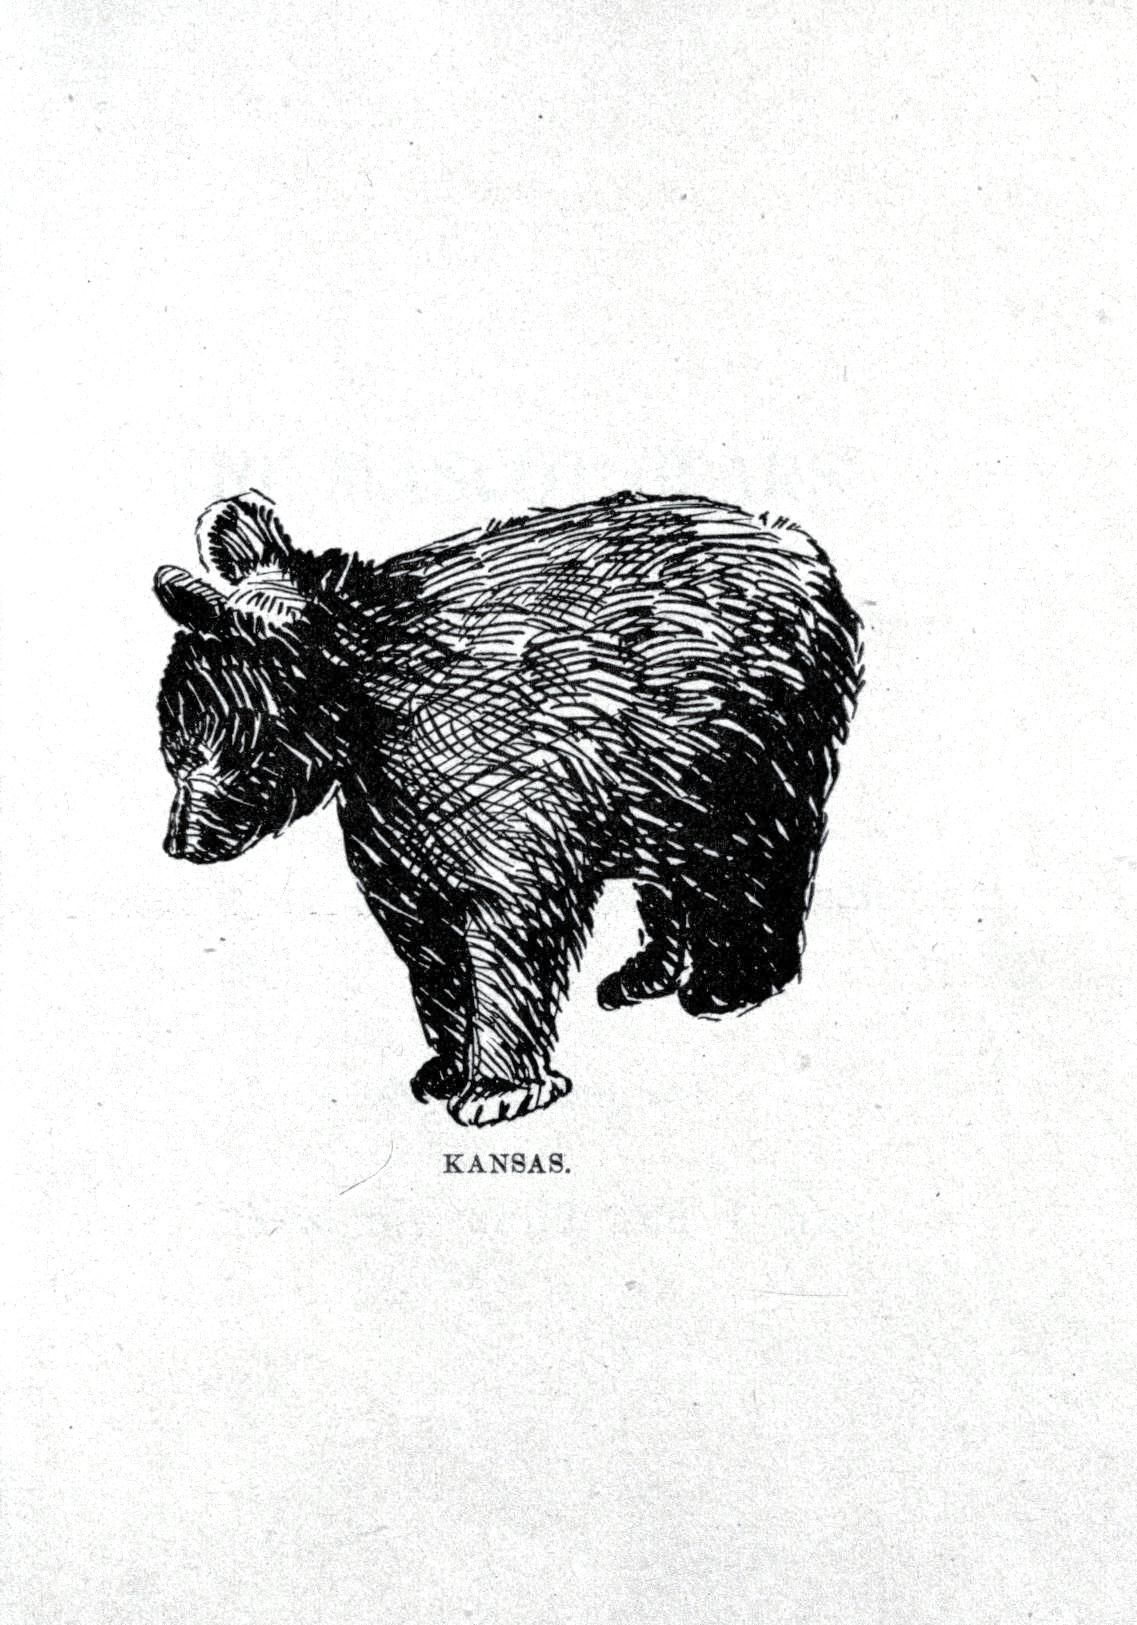 Pencil Drawings Of Grizzly Bears